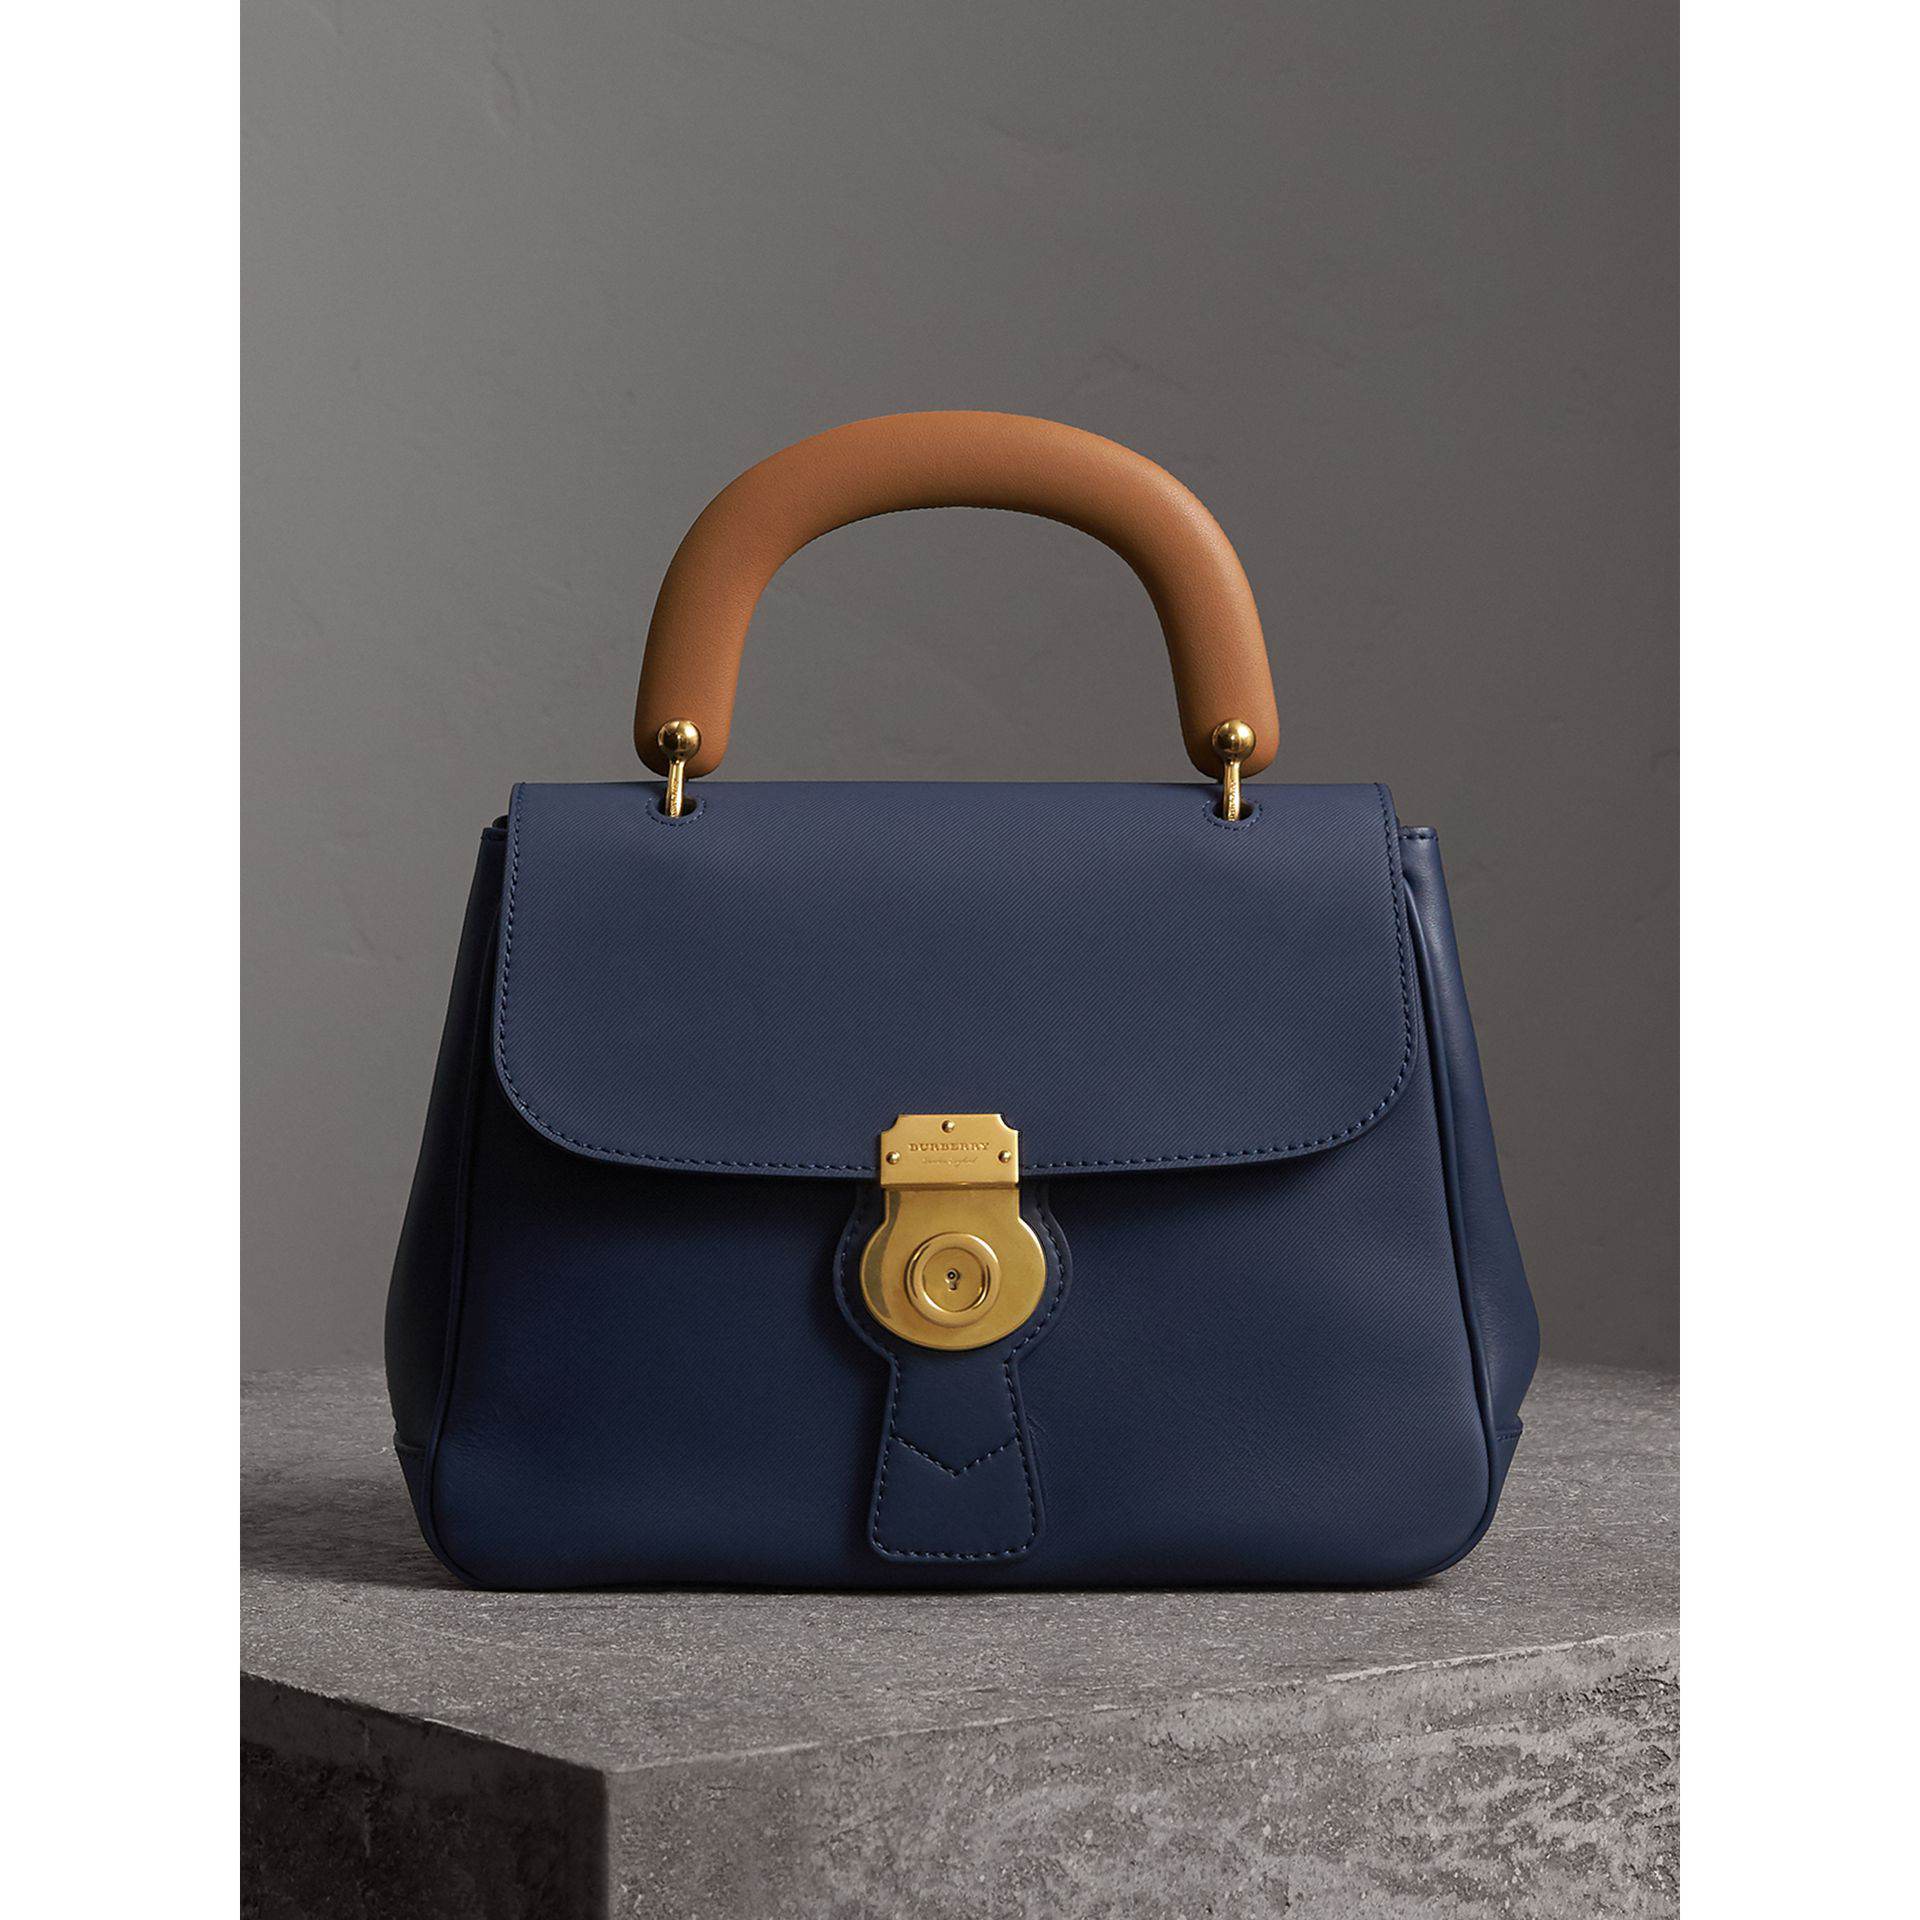 15f6cf9ecd8 Burberry Trench Large Saffiano Top Handle Bag, Blue In Ink Blue ...